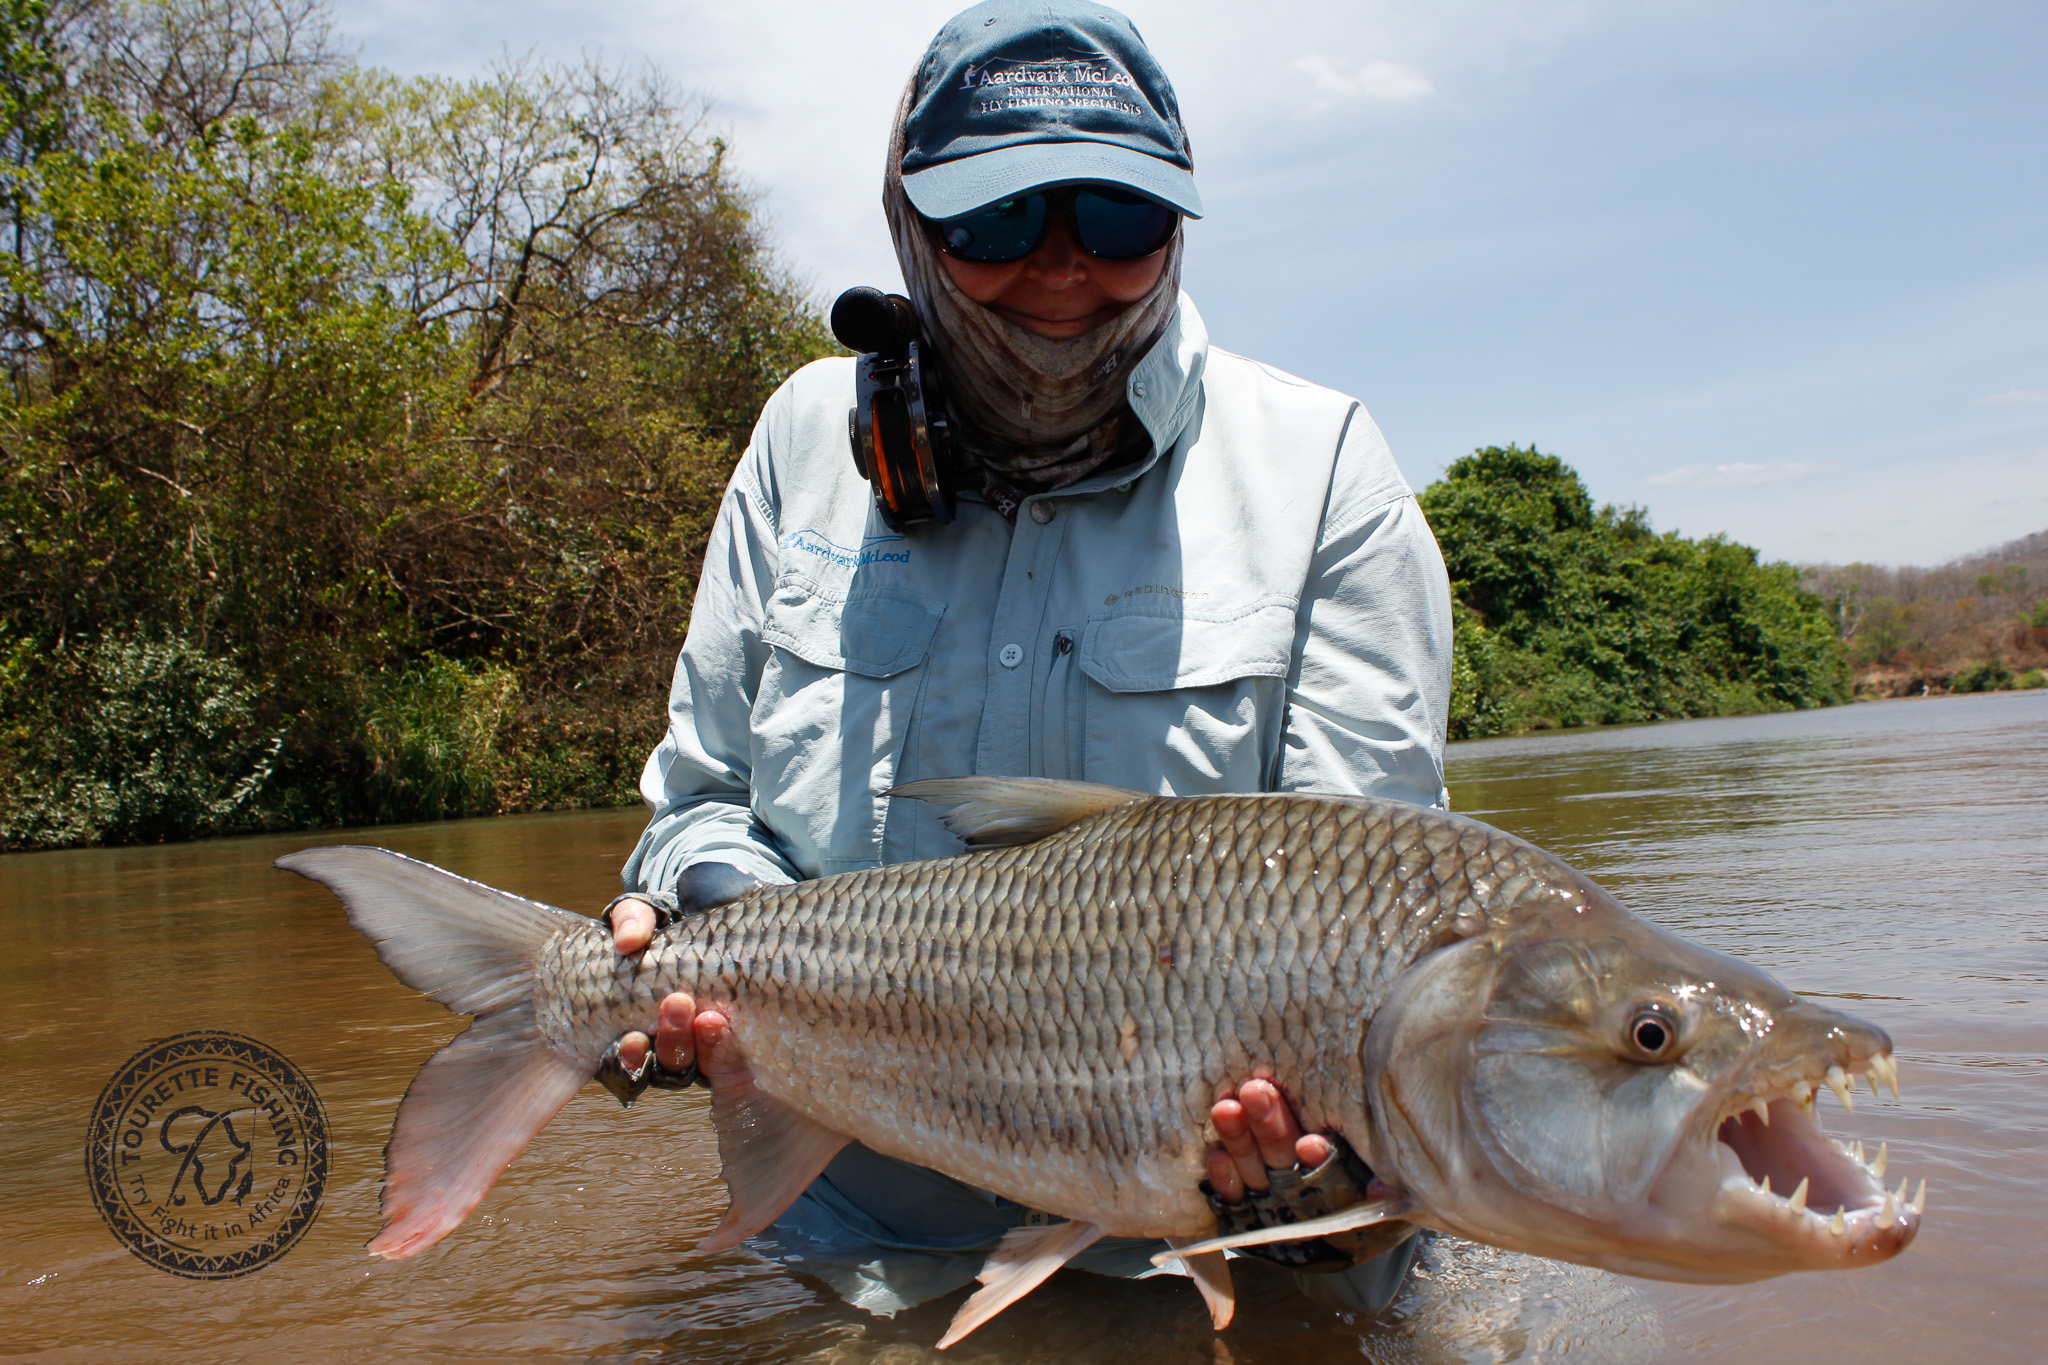 Tanzania, Tigerfish, Mynyera, Ruhudji, fly fishing for tigers, tigerfish on fly, fishing for tigerfish